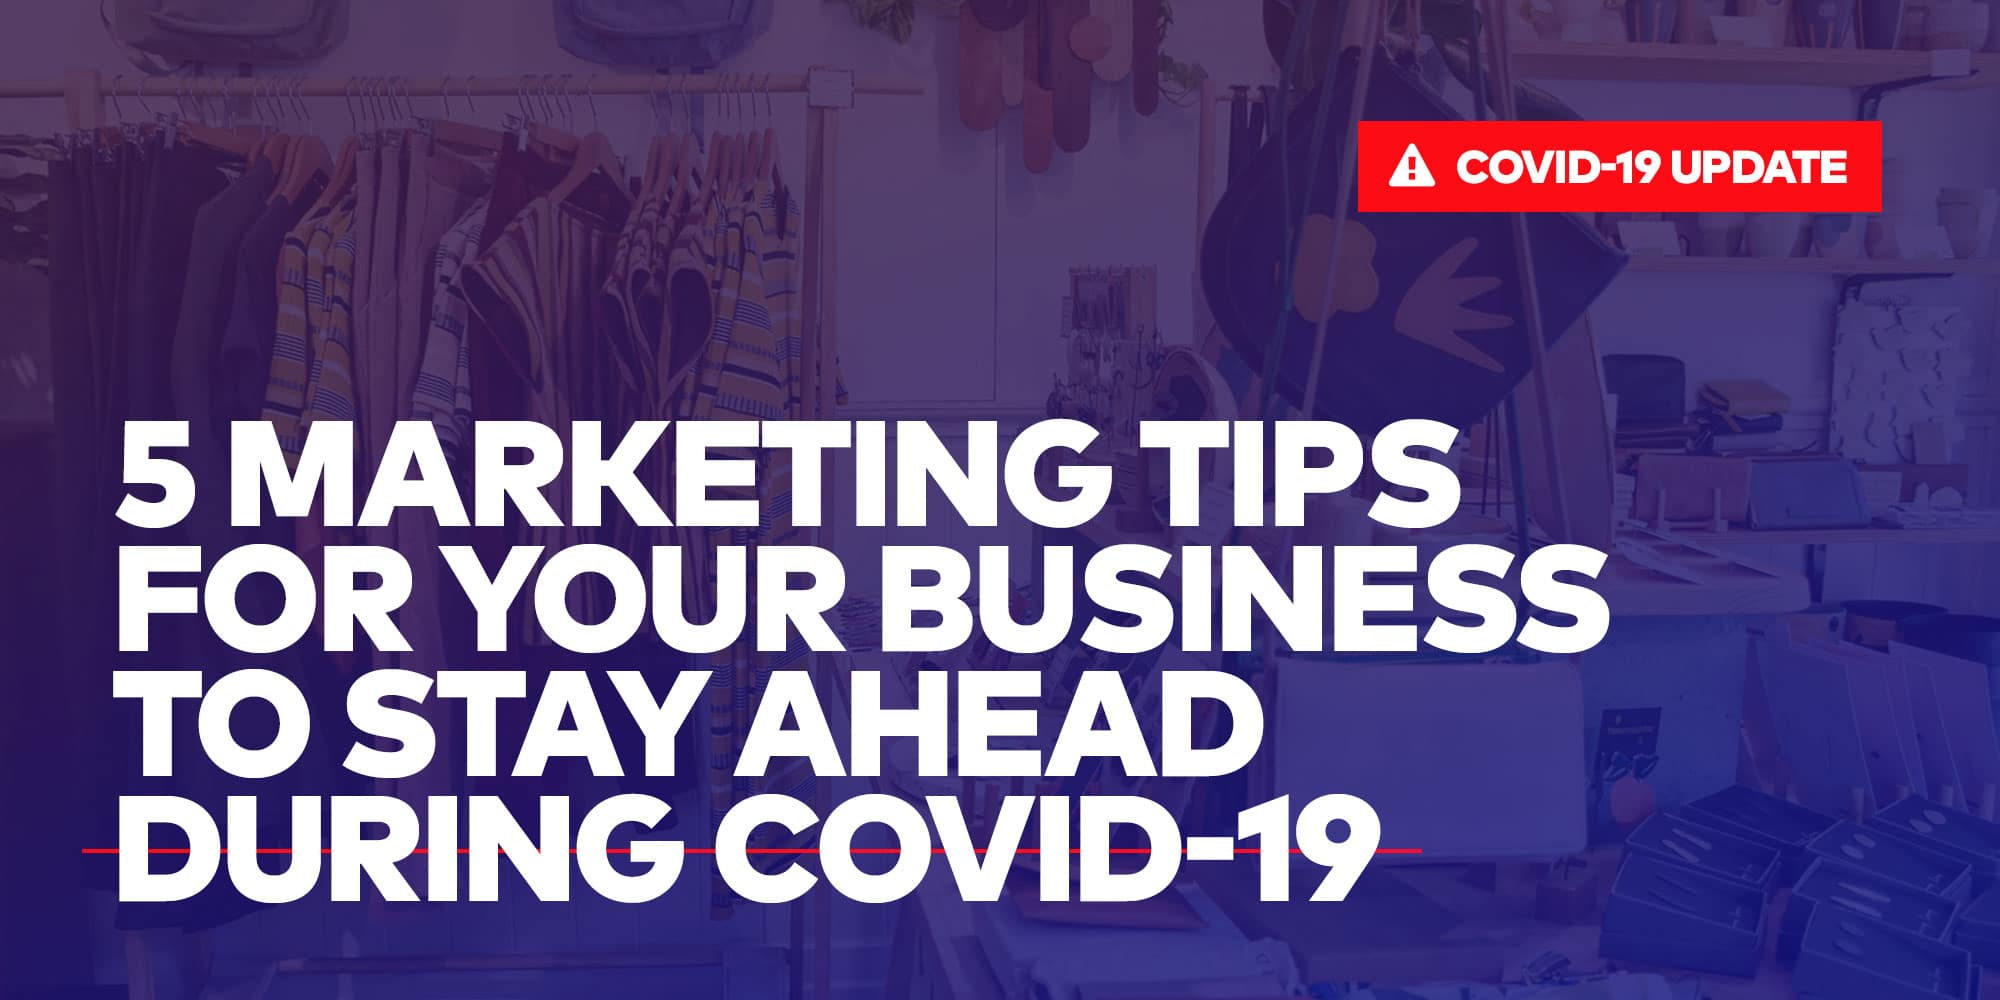 Cover image of 5 marketing tips for your business to stay ahead during COVID-19, part of COVID-19 resources by Single Origin Media, a bay area performance marketing agency